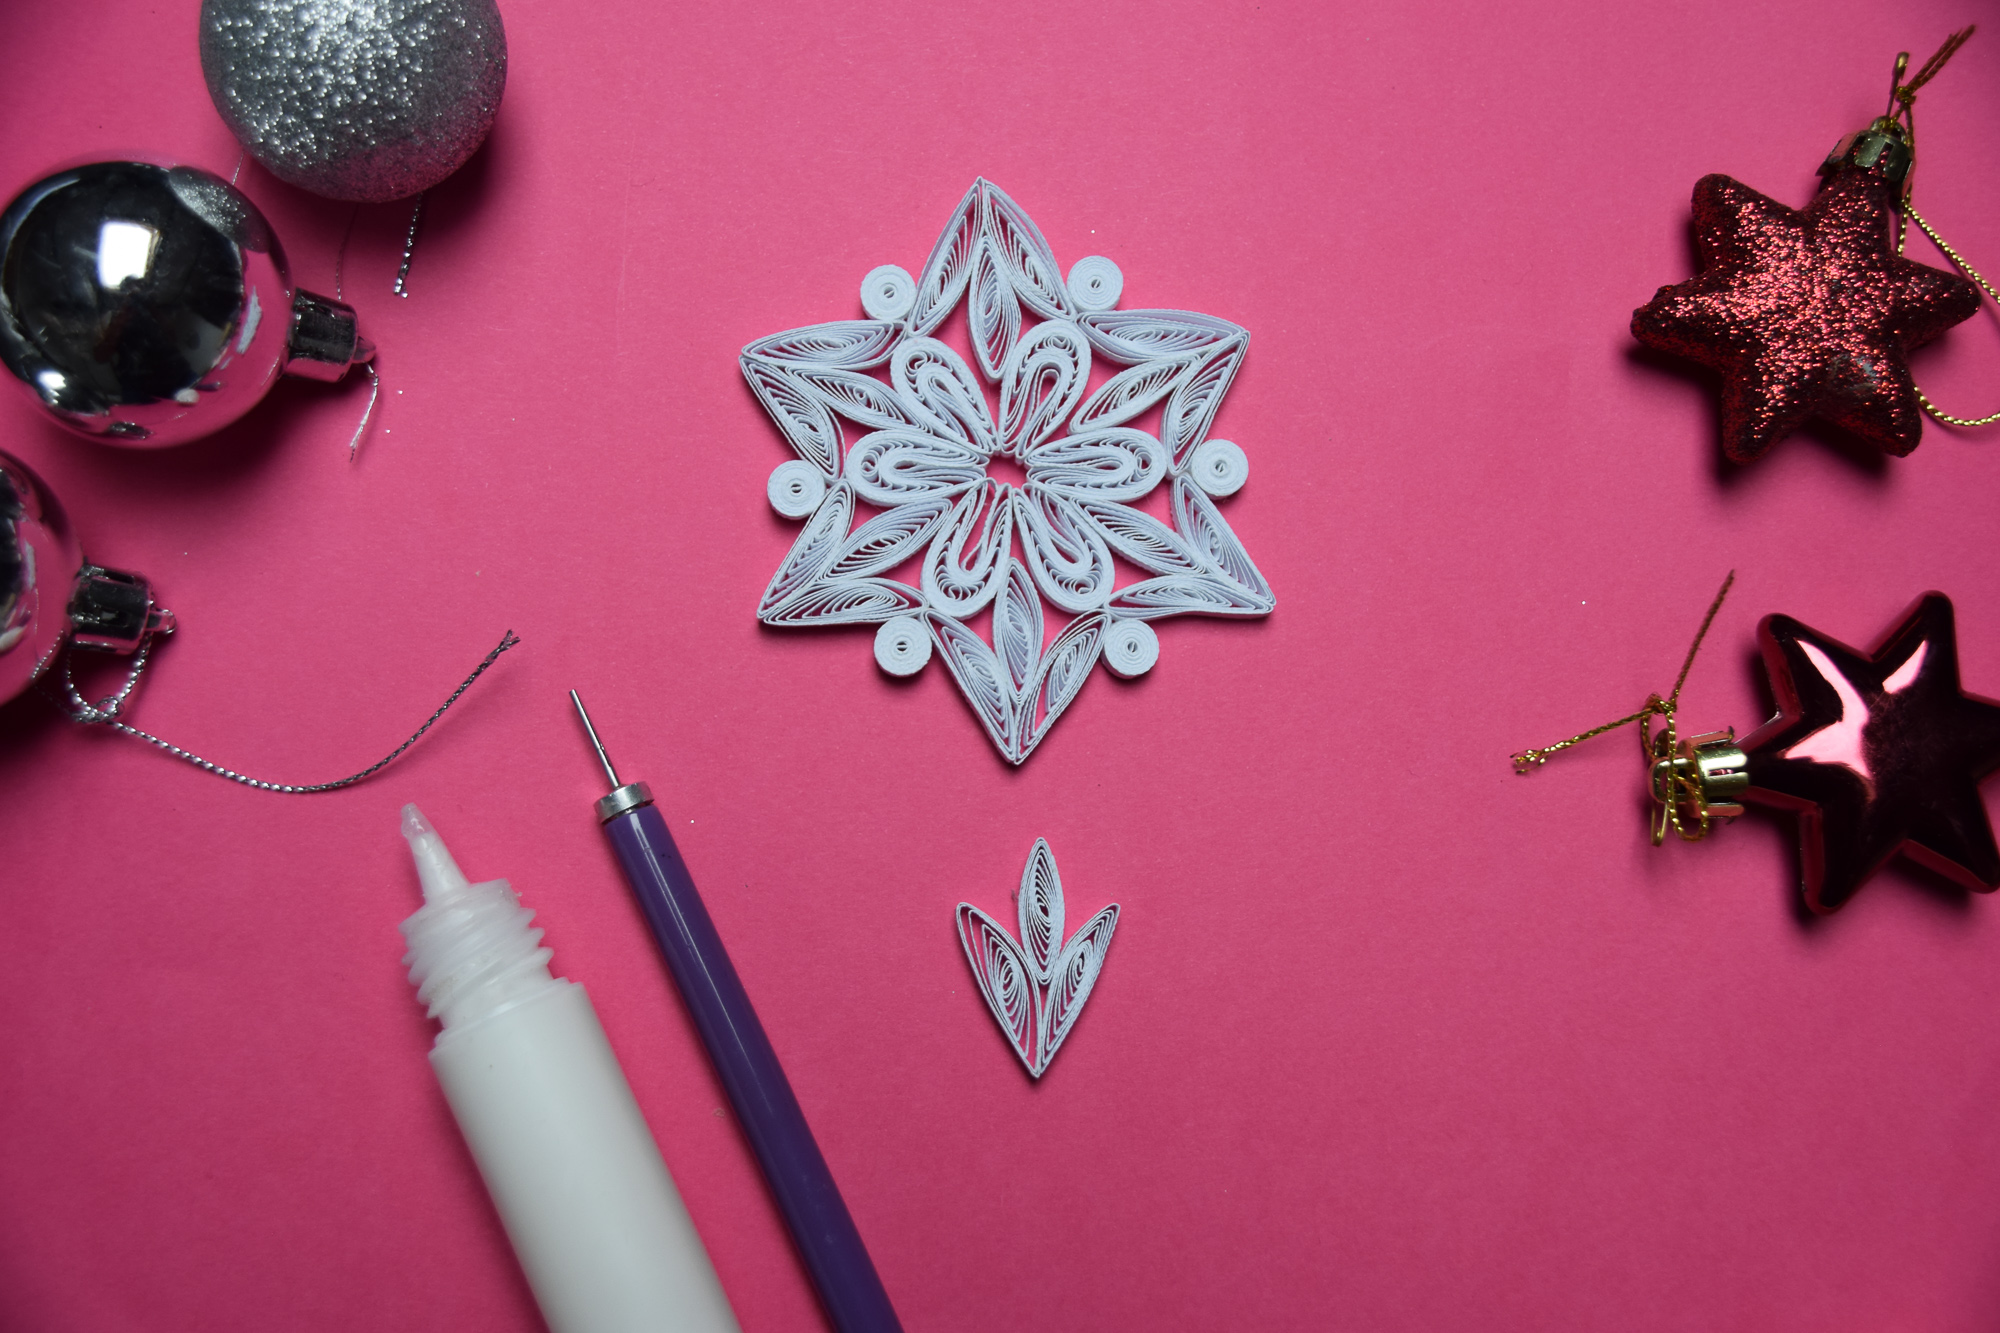 How to Make 6-Pointed Paper Snowflakes | Handmade Paper Ornaments for the Christmas Tree #quilling #howto #tutorial #paperart #diyproject #diy #treeornament